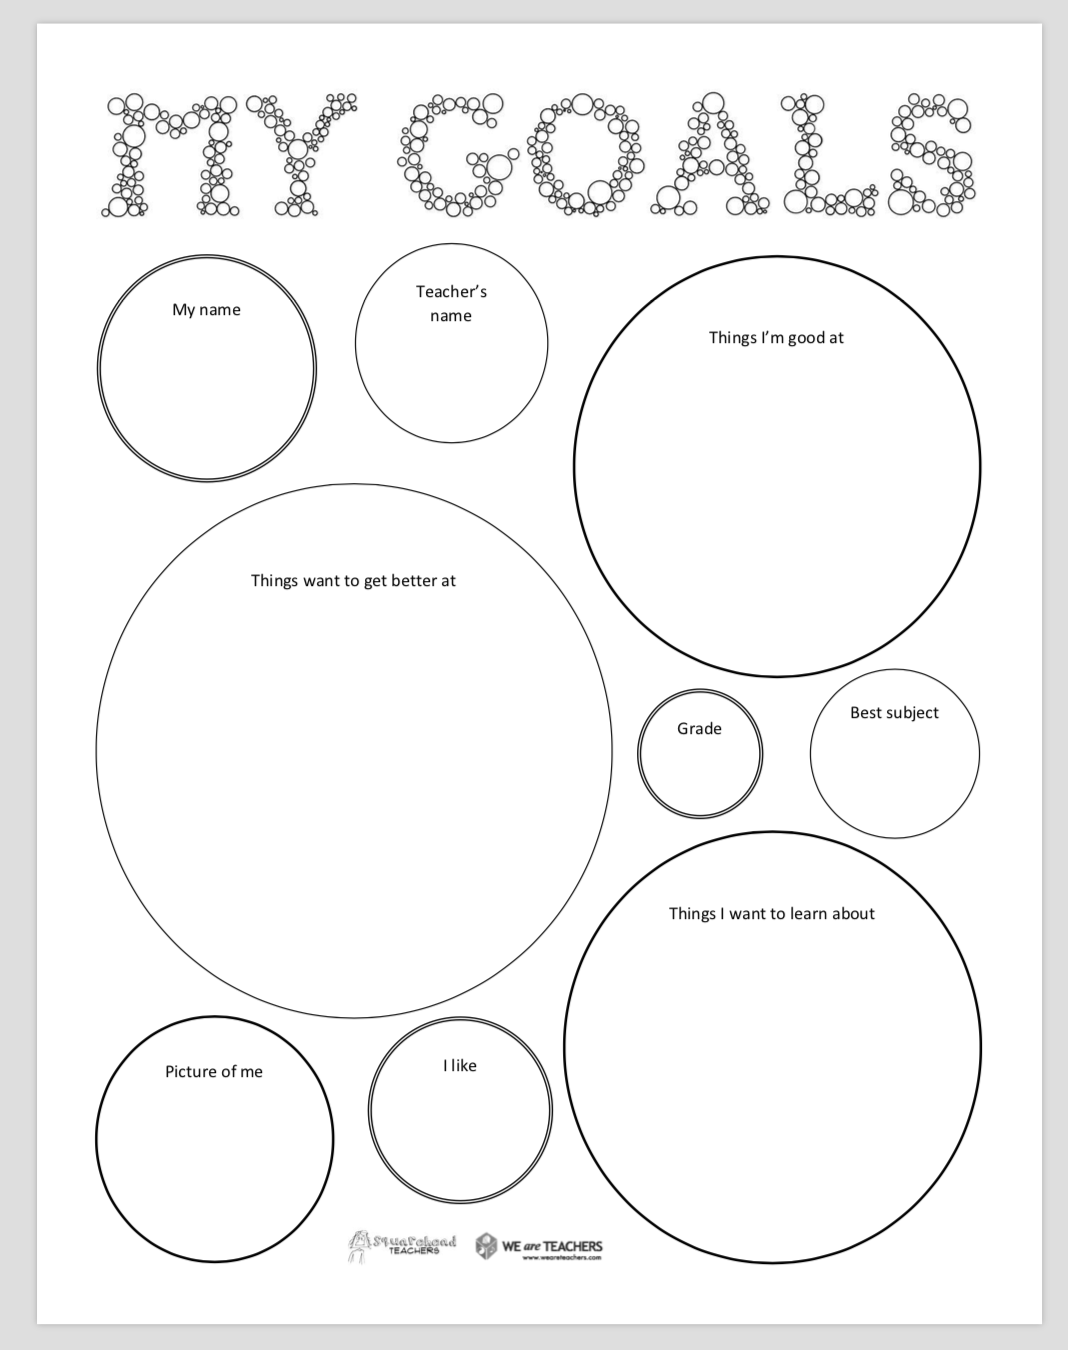 Help Students Set Goals This School Year With Our Free